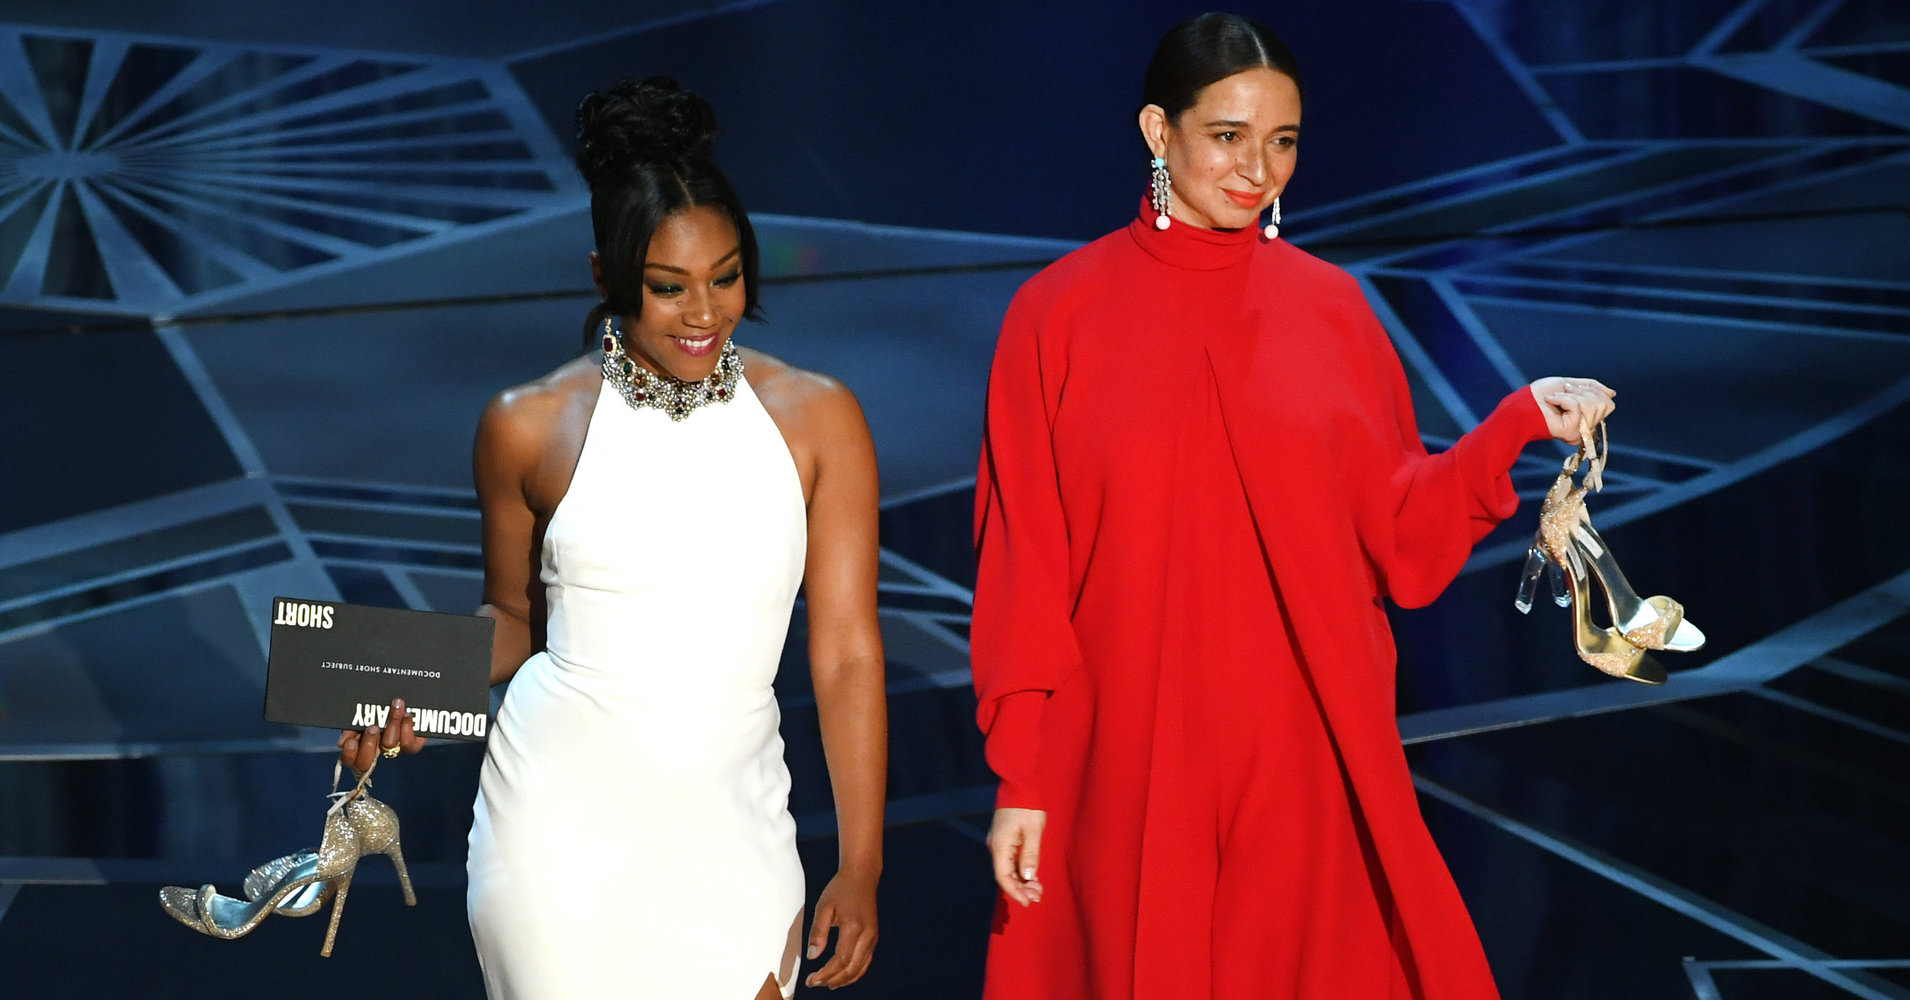 And The Award For Best Duo At The Oscars Goes To Tiffany Haddish And Maya Rudolph